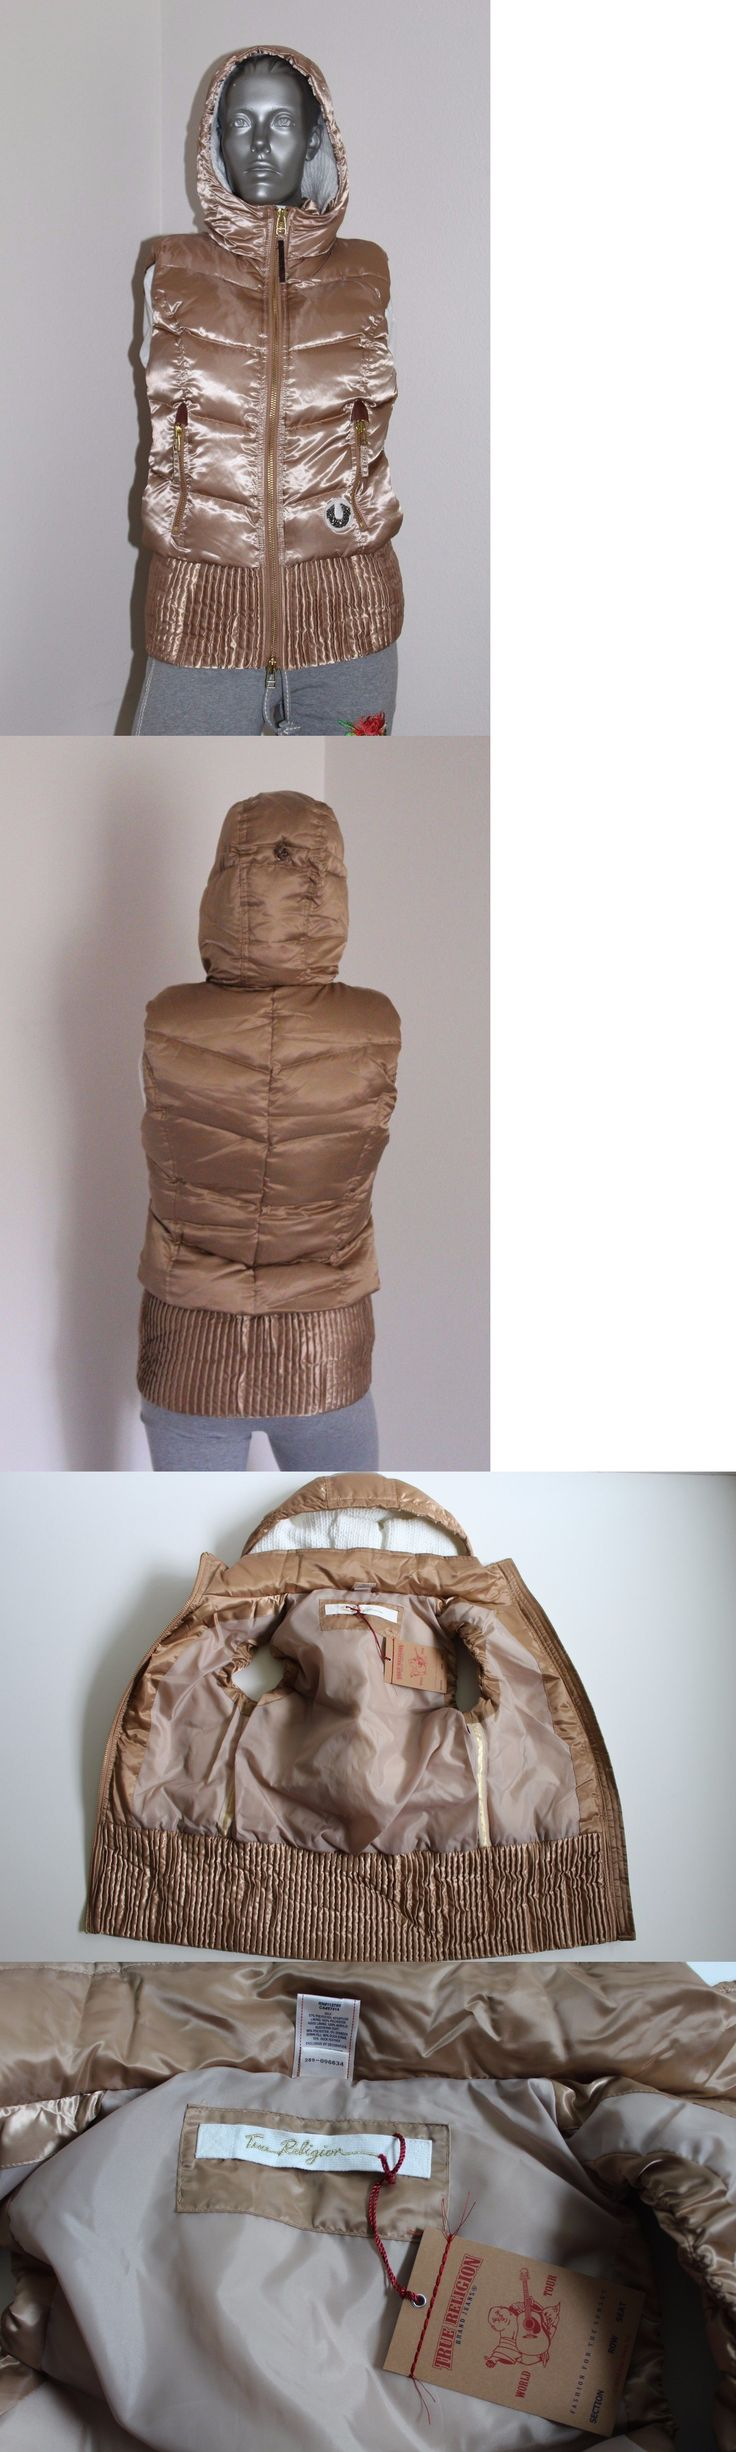 Vests 15775: True Religion Women S Quilted Puff Gilet. Gold Vest. Nwt -> BUY IT NOW ONLY: $59.99 on eBay!